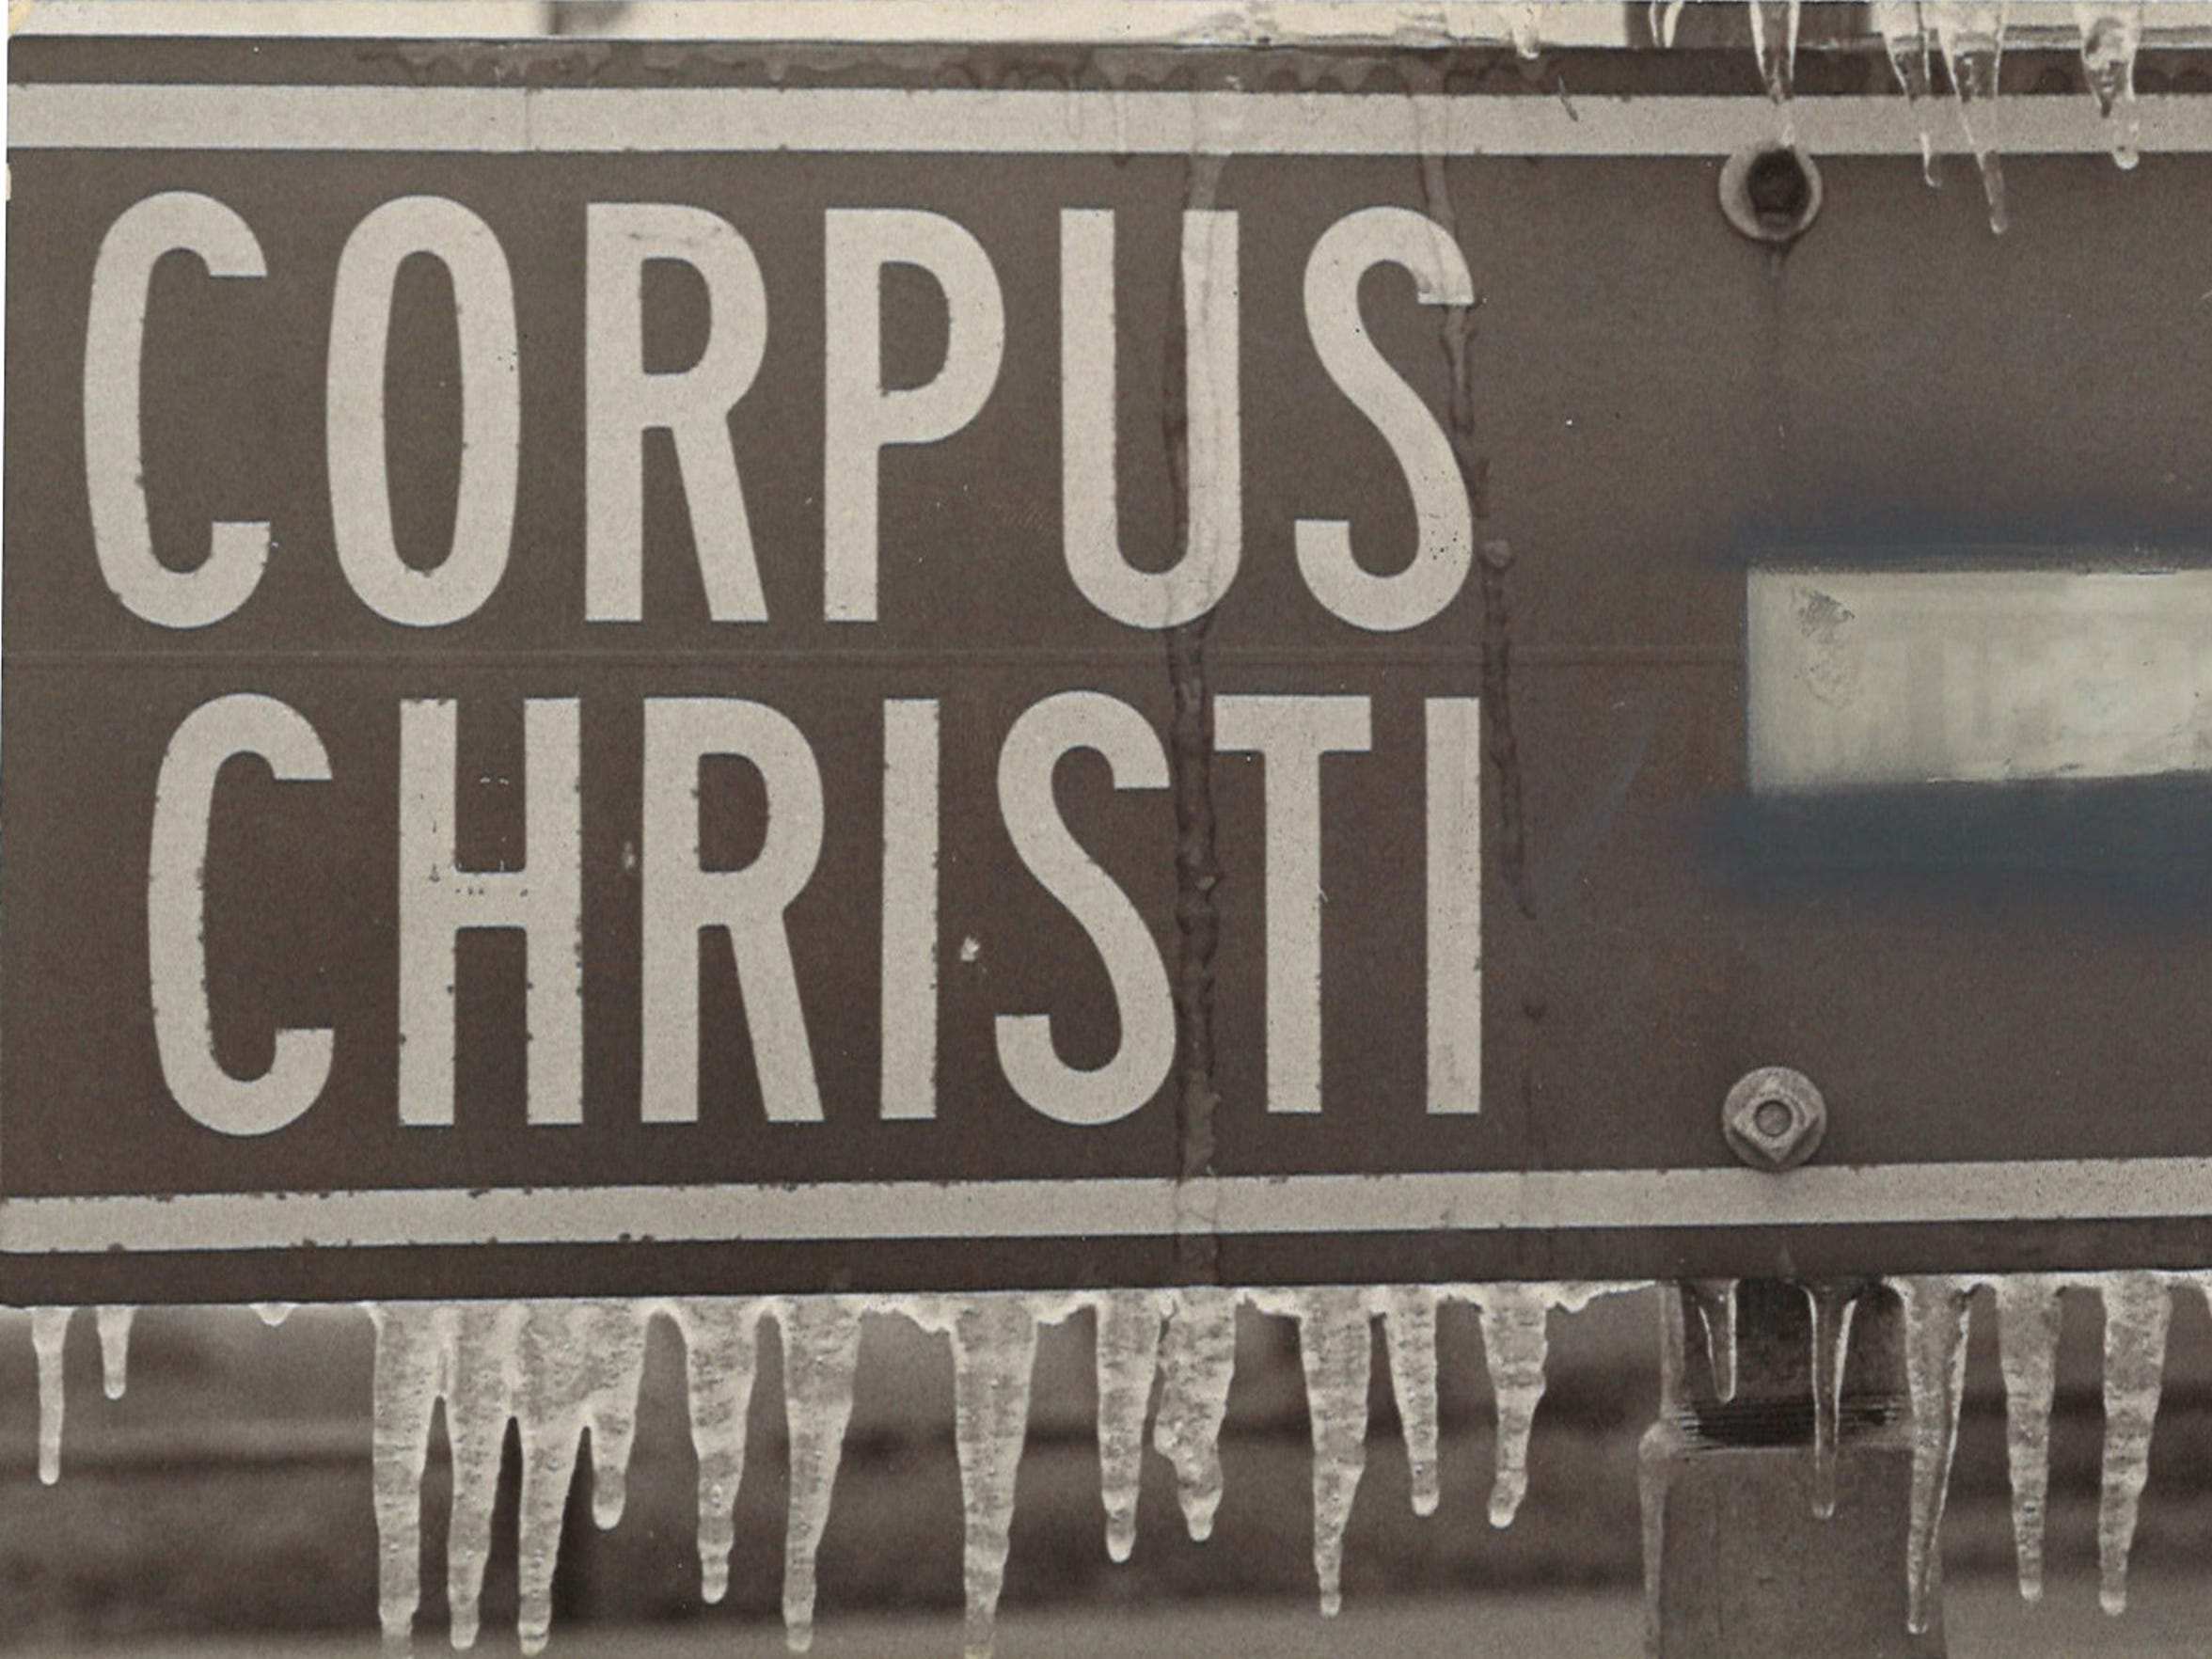 Even Corpus Christi can get freezing weather, as evidenced